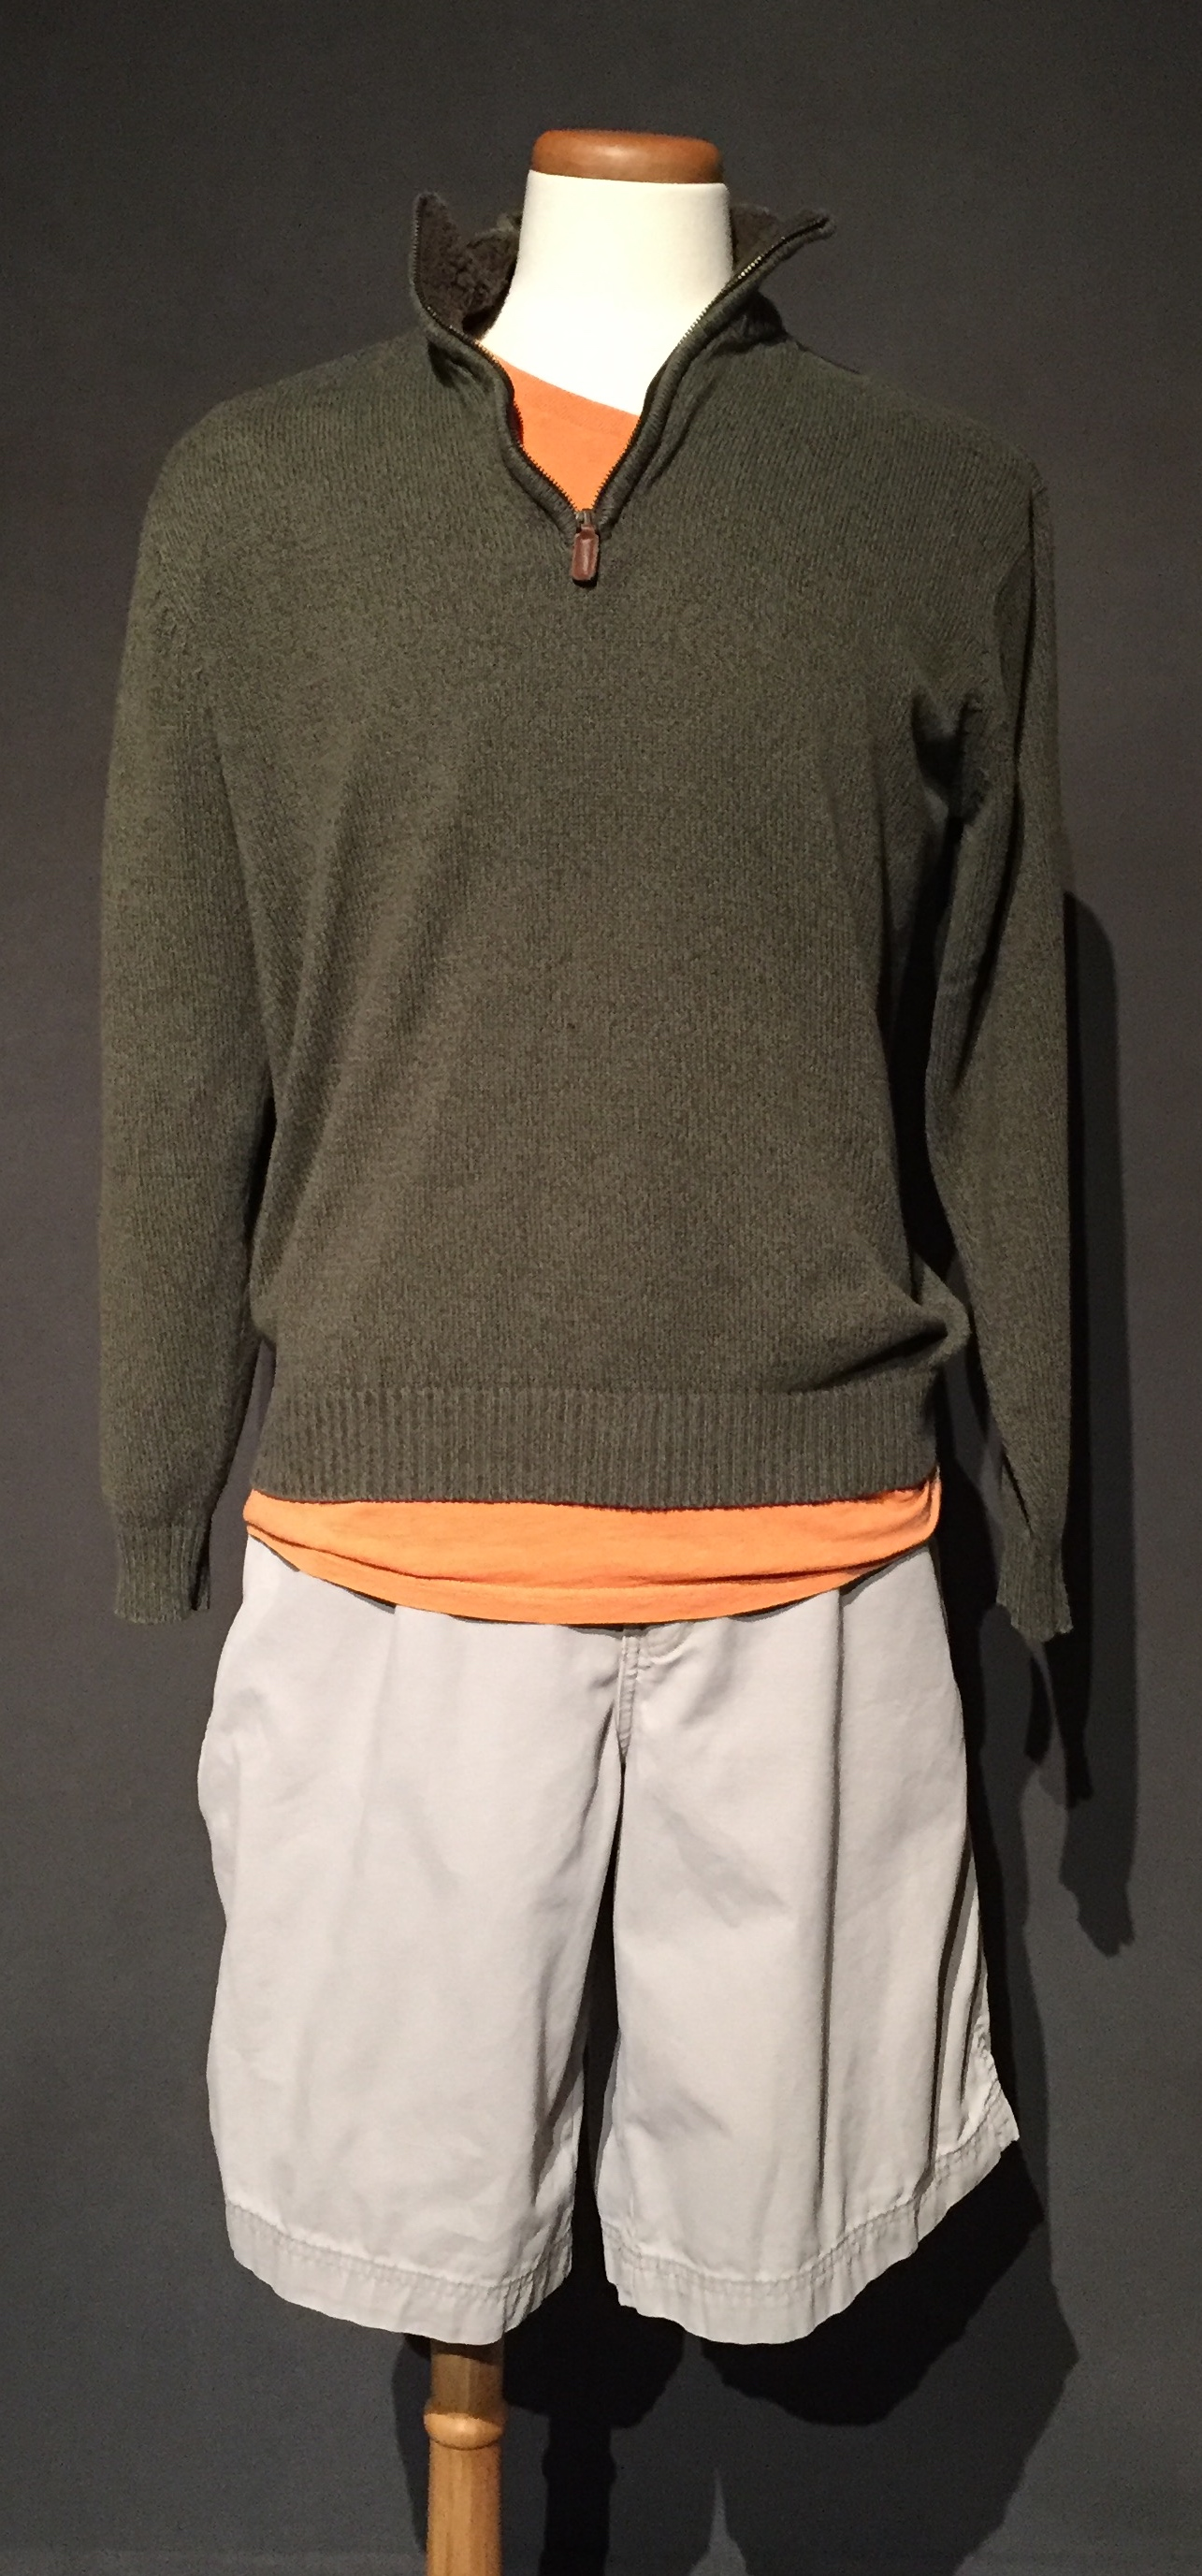 "- Green sweater, orange t-shirt, tan cargo shortsOwner – Kai, gay, woman, 43, lives in Iowac. 2010s""I prefer men's [clothes] you know, I'm attracted to most things that are men's styles.""""Anything cargo I'm all in, I just think they're great, how could you ever have too many pockets?""""Because its an automatic assumption [that she's gay], and because I look the way that I do [masculine] I don't always get to make that choice [to disclose her sexuality or not], and there are days when I don't want to carry the sword. There are days where, I don't want to have to say I'm gay or I'm married to a woman, or there's days where I'm just tired and I just want to be able to easily move through this interaction and move on and I can't because of the way I look. That's probably one of the more difficult aspects I think. I'm coming out all of the time because of the way I look whether I want to or not."" -personal interview with Kai, October 17th, 2017"